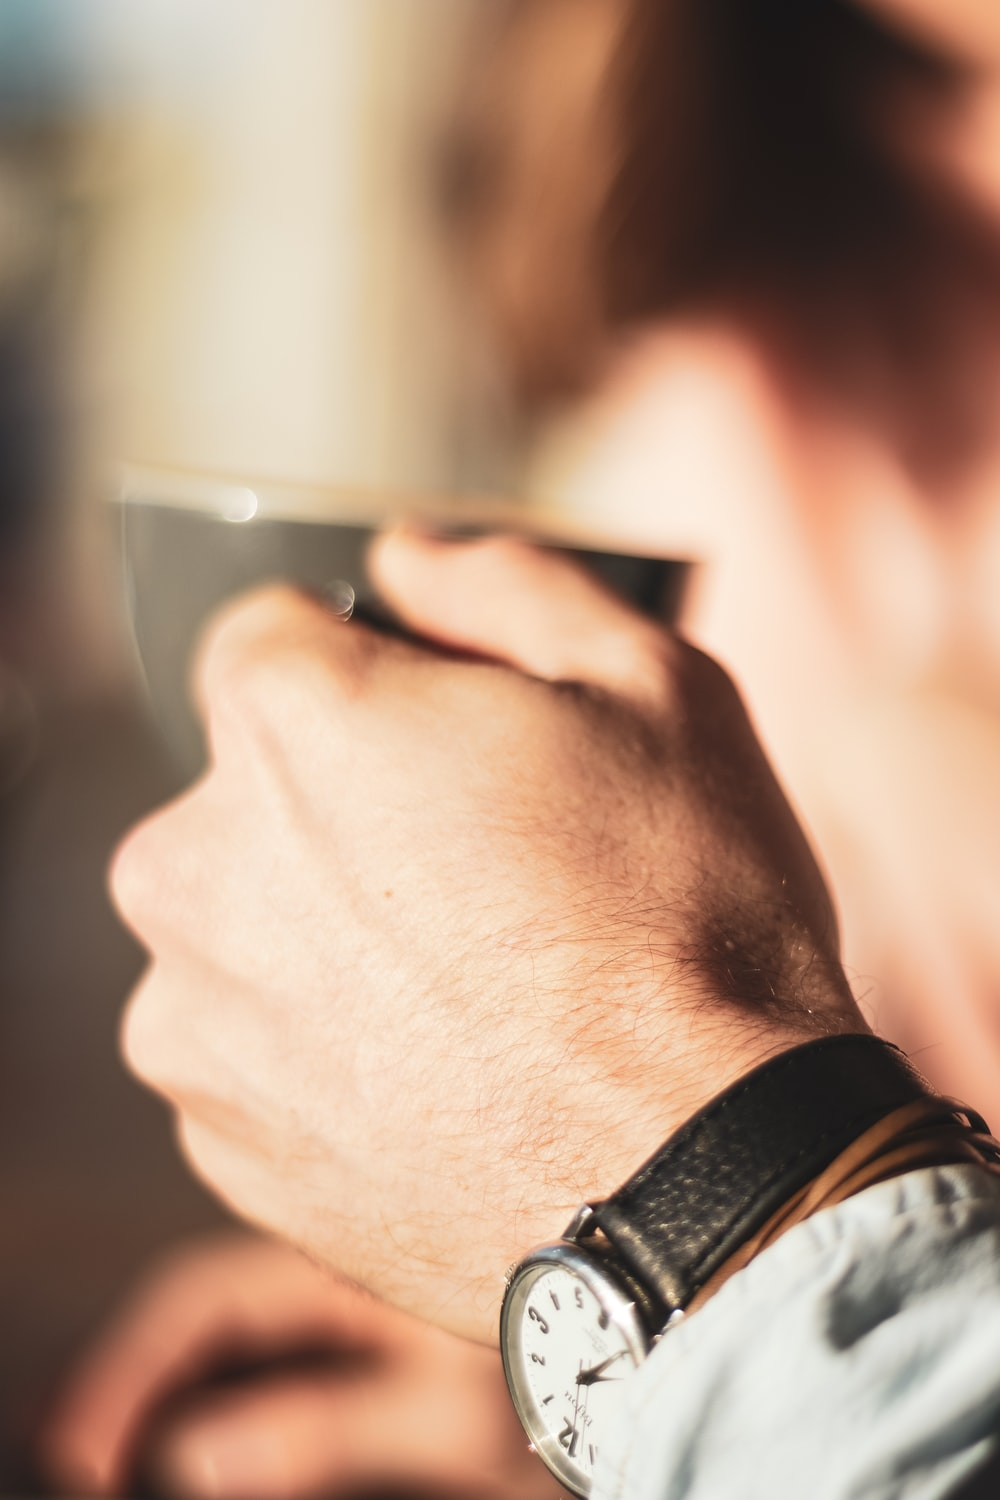 person wearing black watch holding clear drinking glass